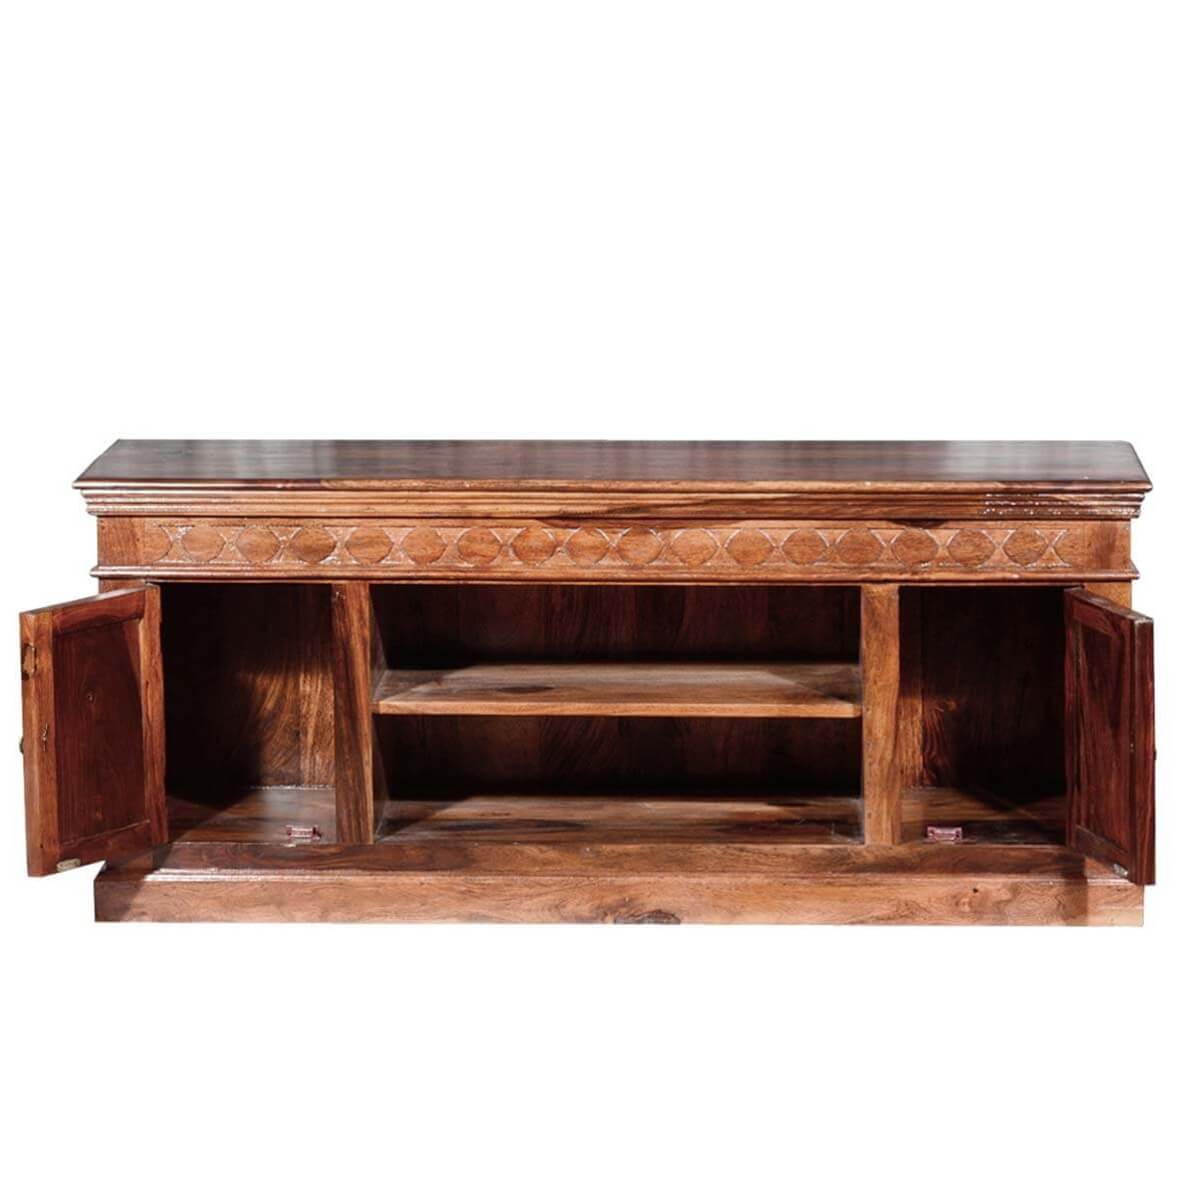 Rustic solid wood doors hand carved tv console